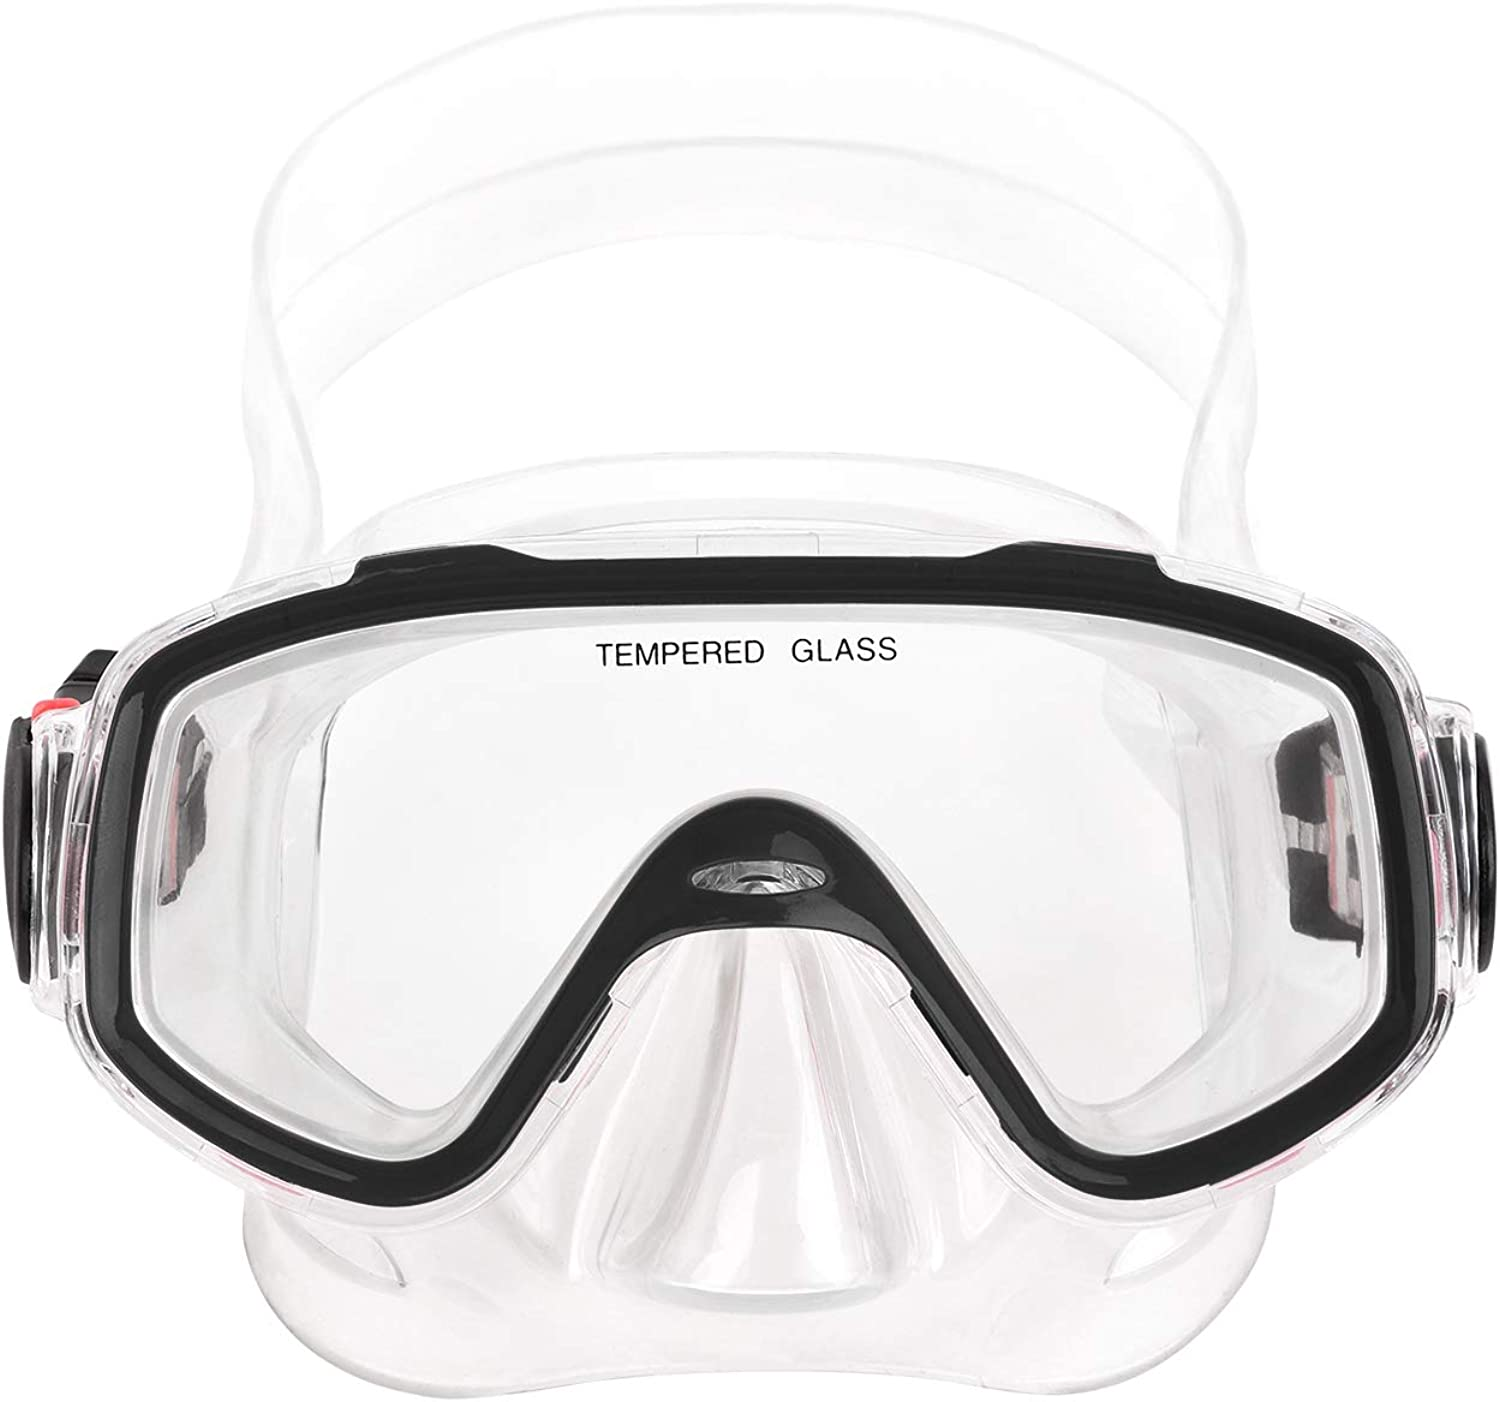 Kids Diving Masks Swimming Goggles Sn Scuba Attention brand Same day shipping Swim Waterproof Dive